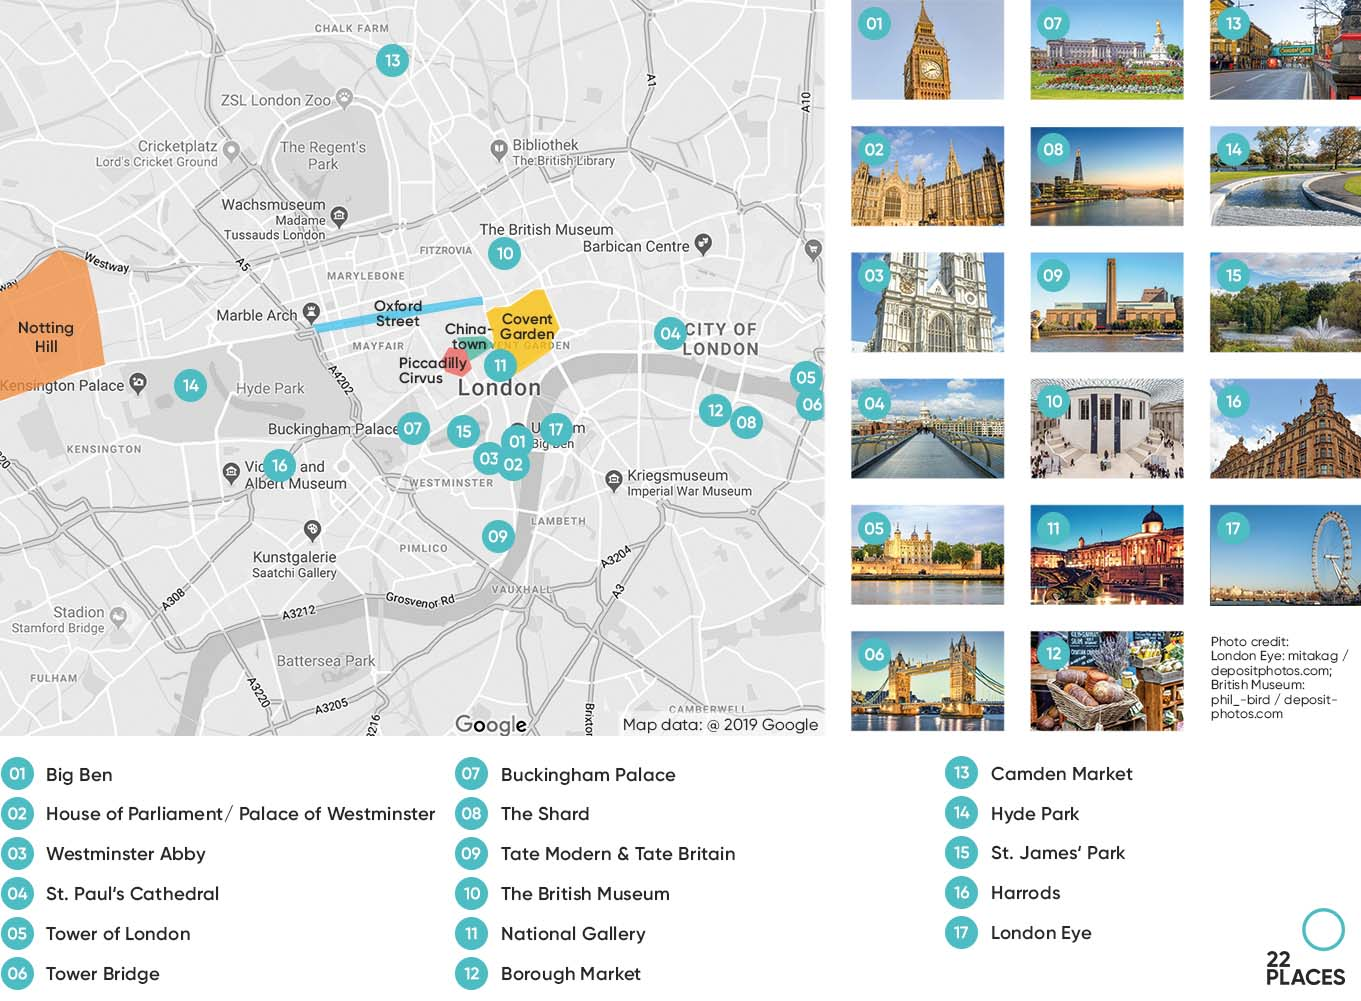 A map of the 22 best attractions in London.